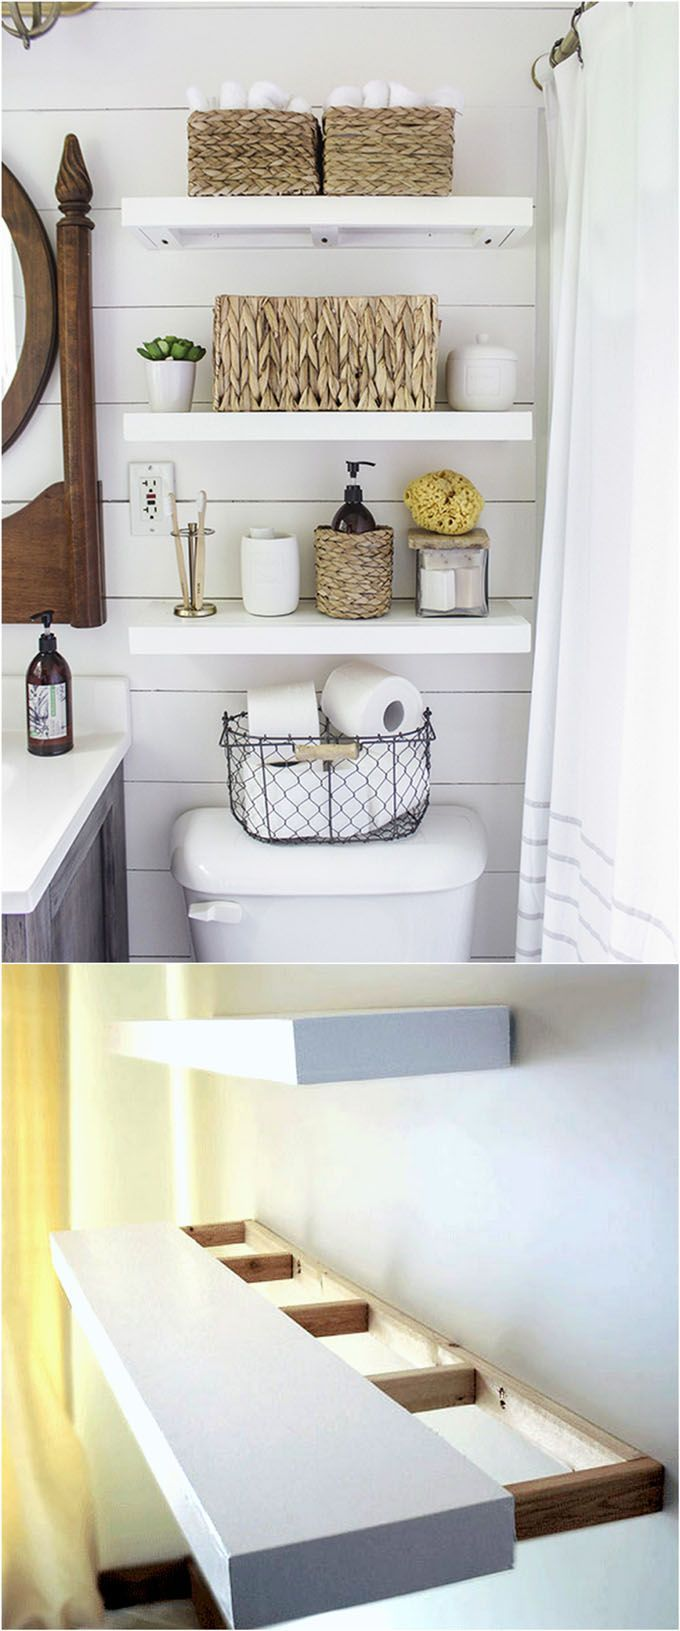 Salle De Bain Rangement Diy ~ 17 answers to bathroom storage ideas with diy 3 diy floating